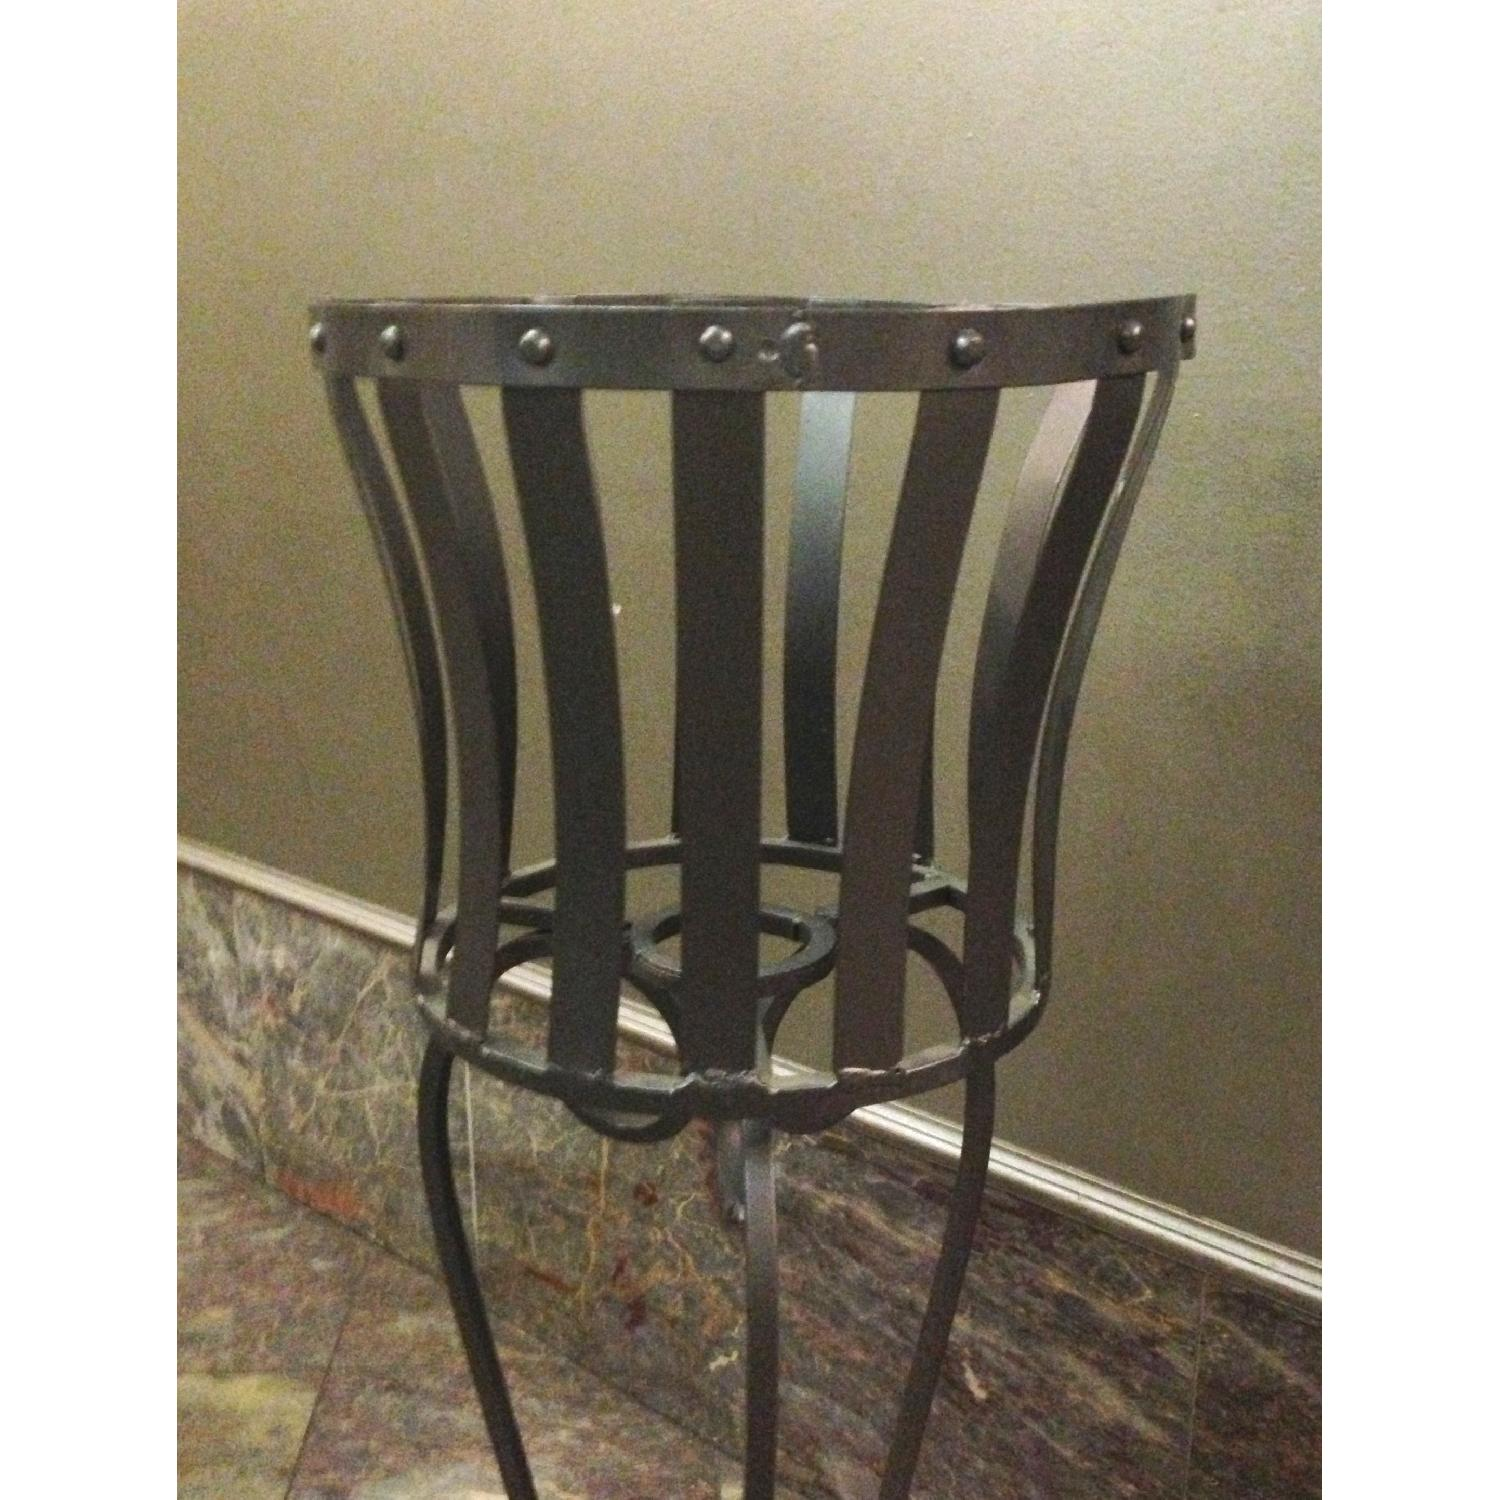 Vintage Wrought Iron Rustic Plant Stand w/ Scroll Legs - image-2